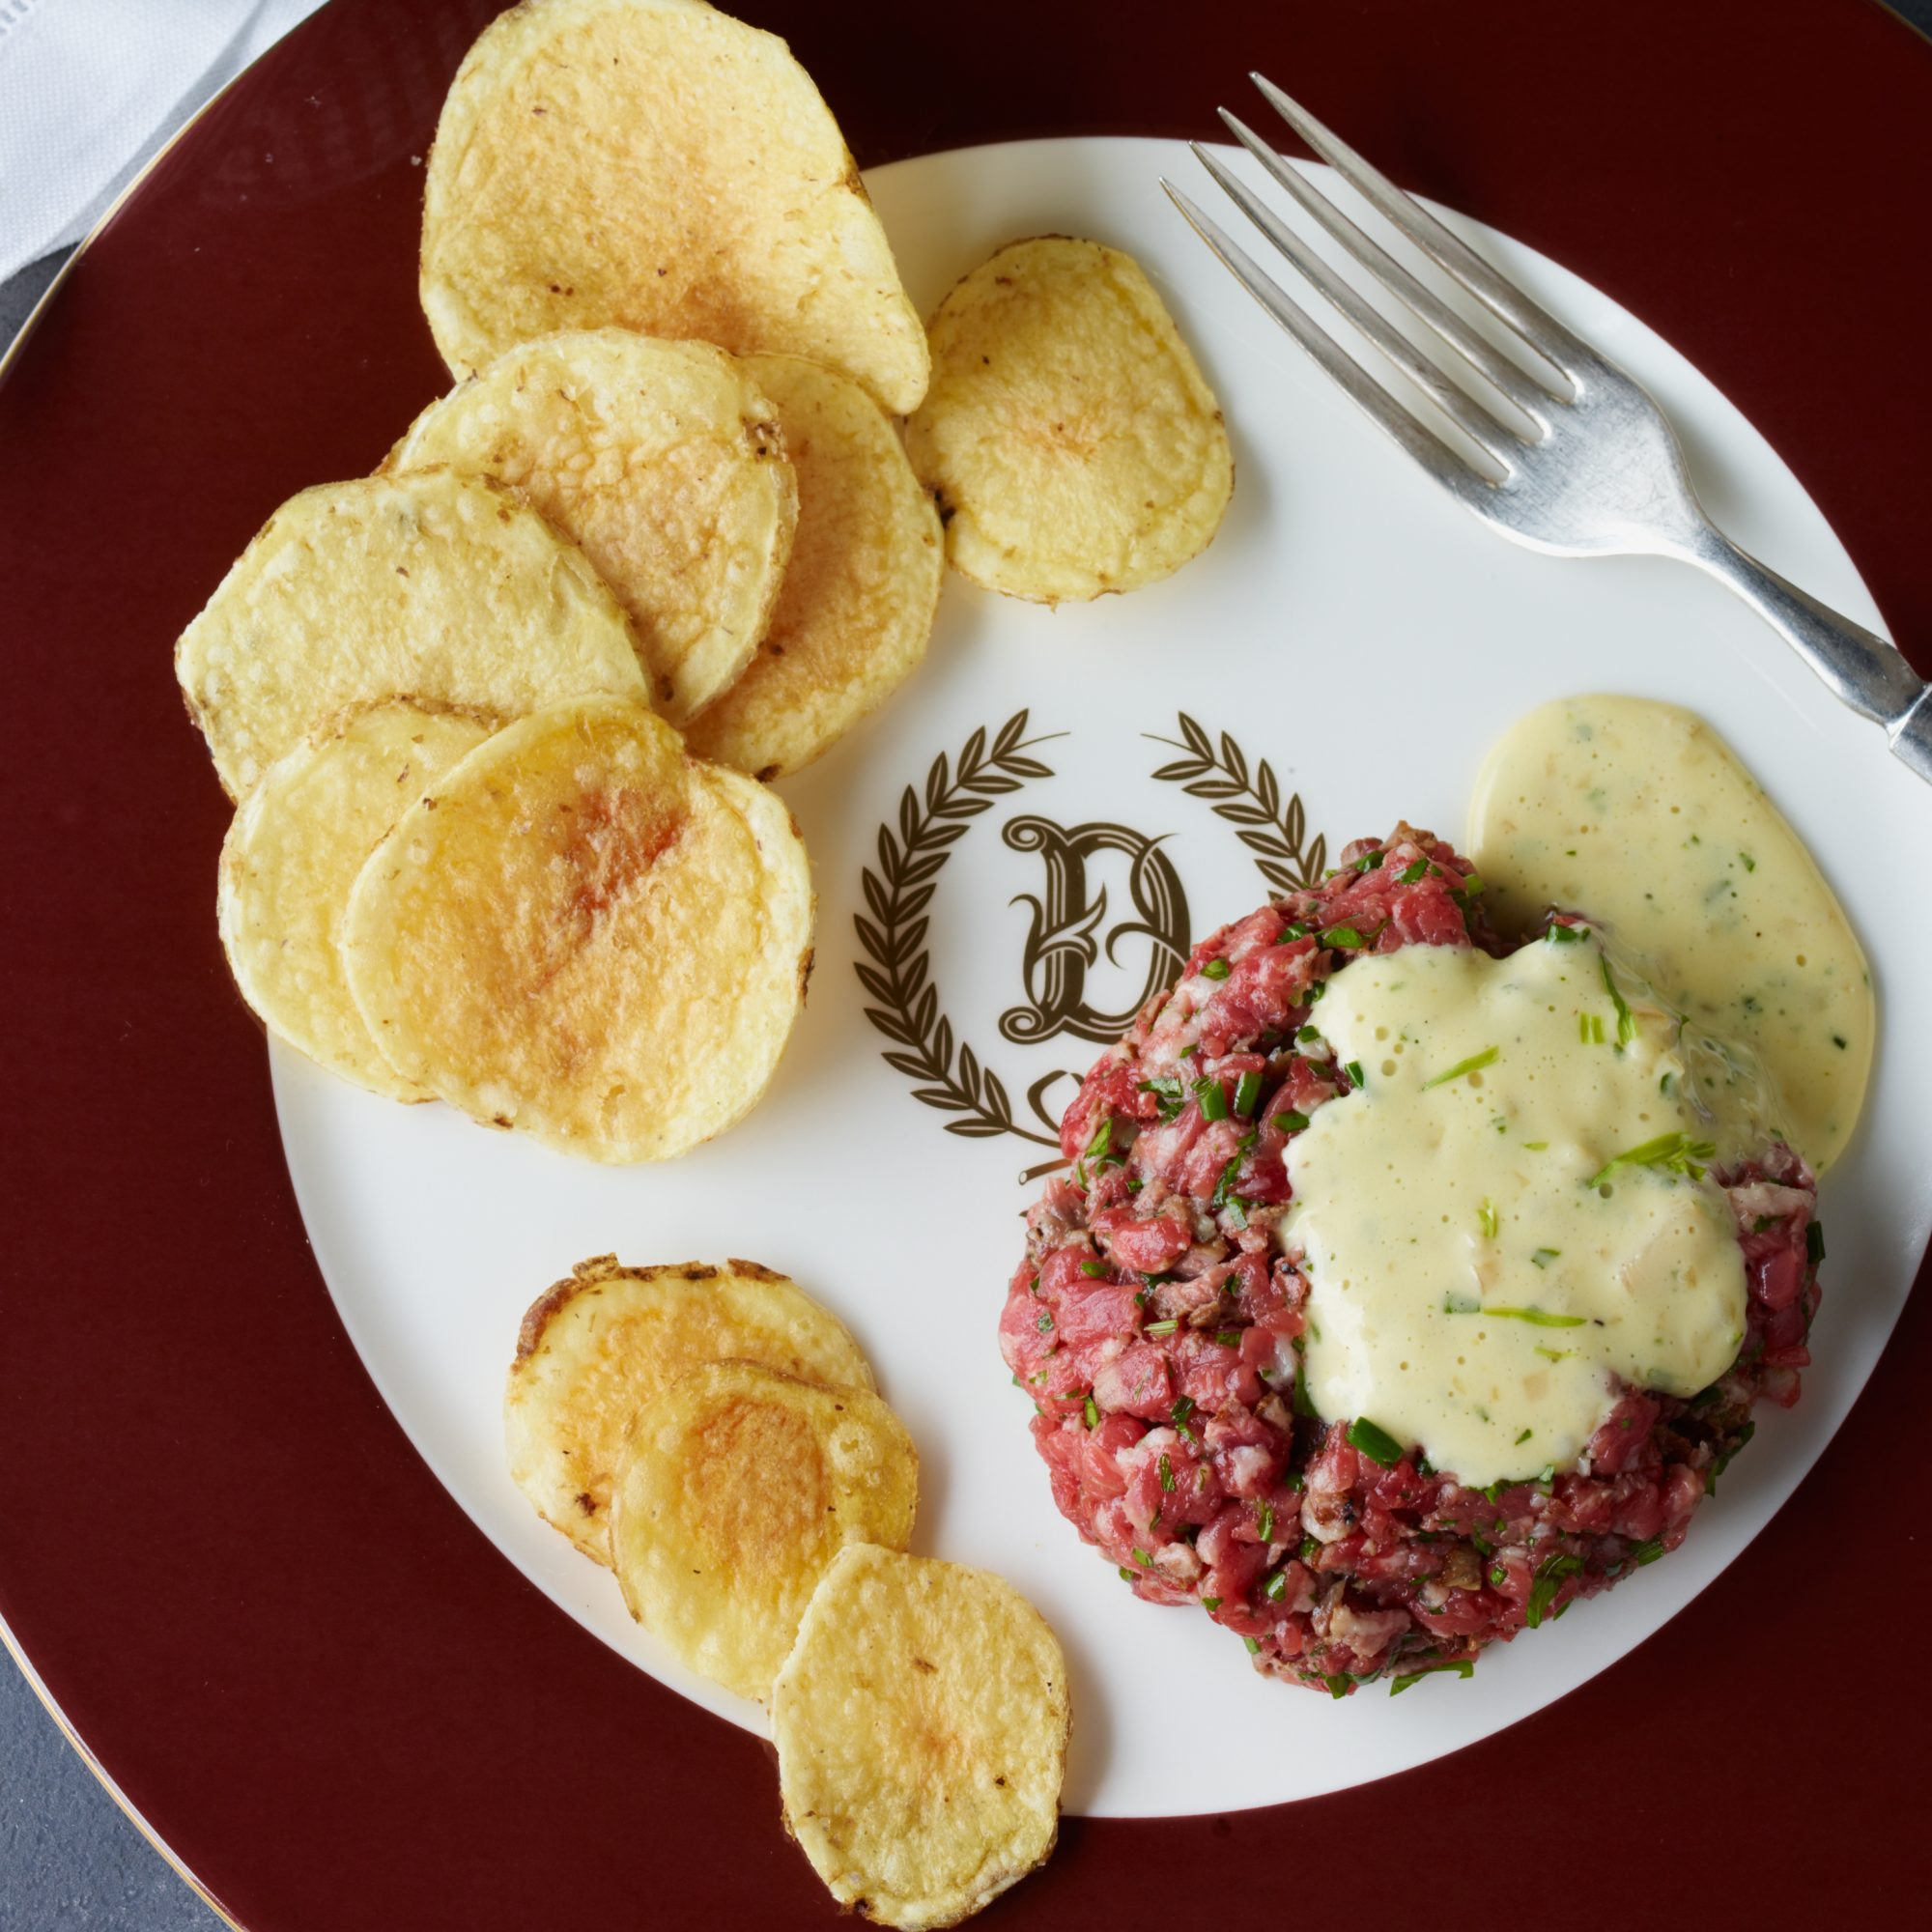 images-sys-201112-r-tartare-delmonico-with-bearnaise-sauce.jpg